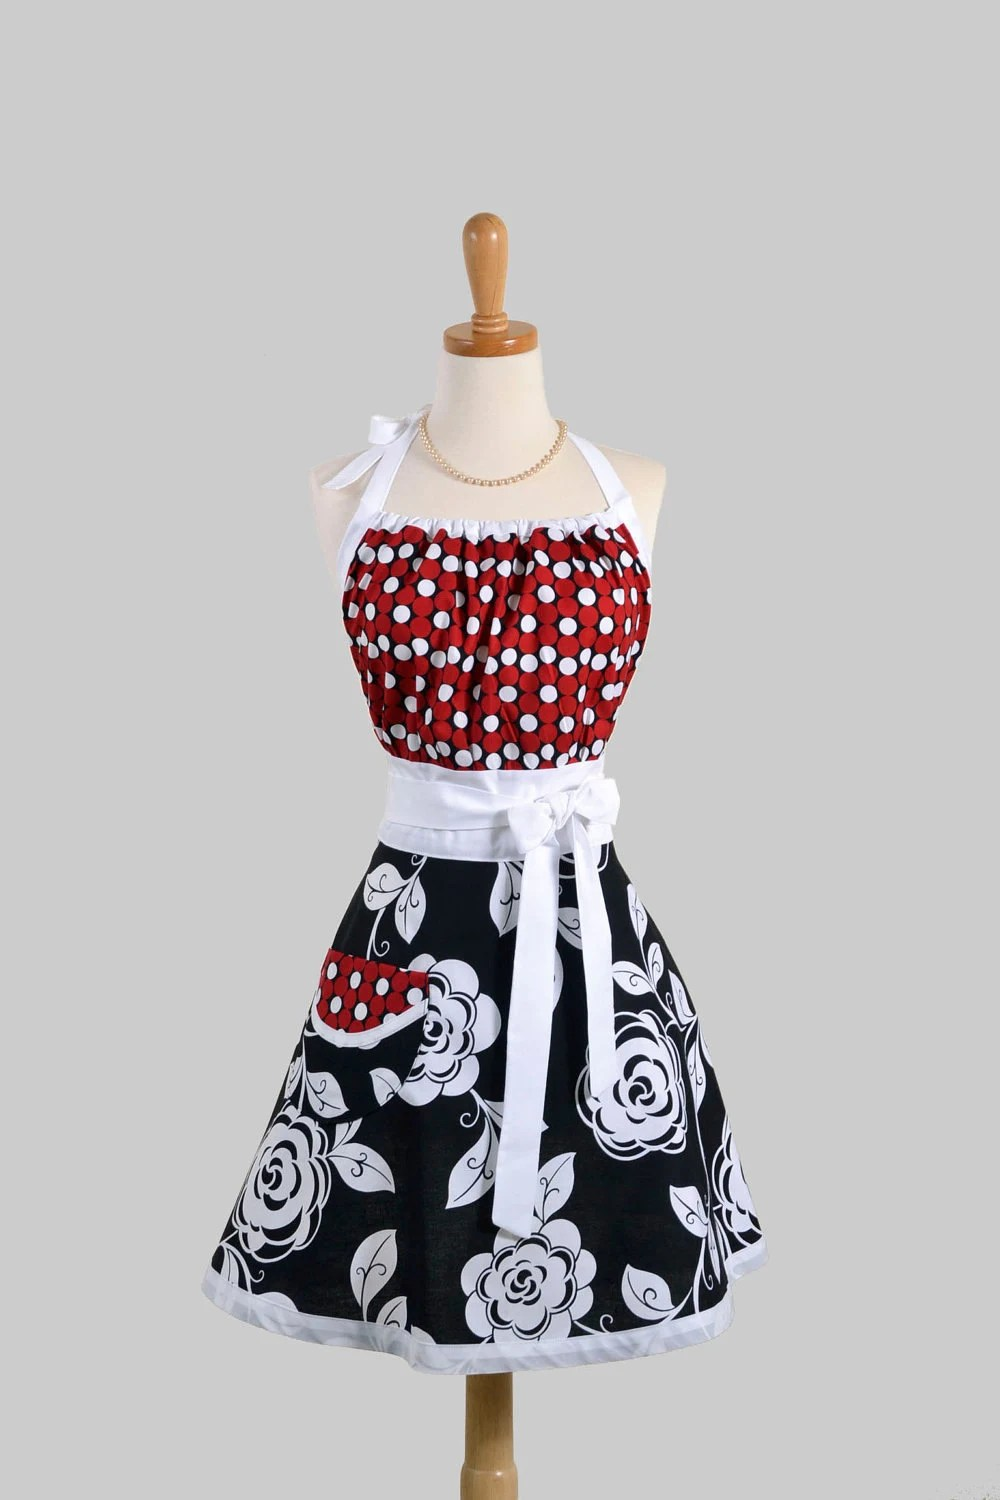 Cute Kitsch Apron Modern Design In Retro Bold Black And